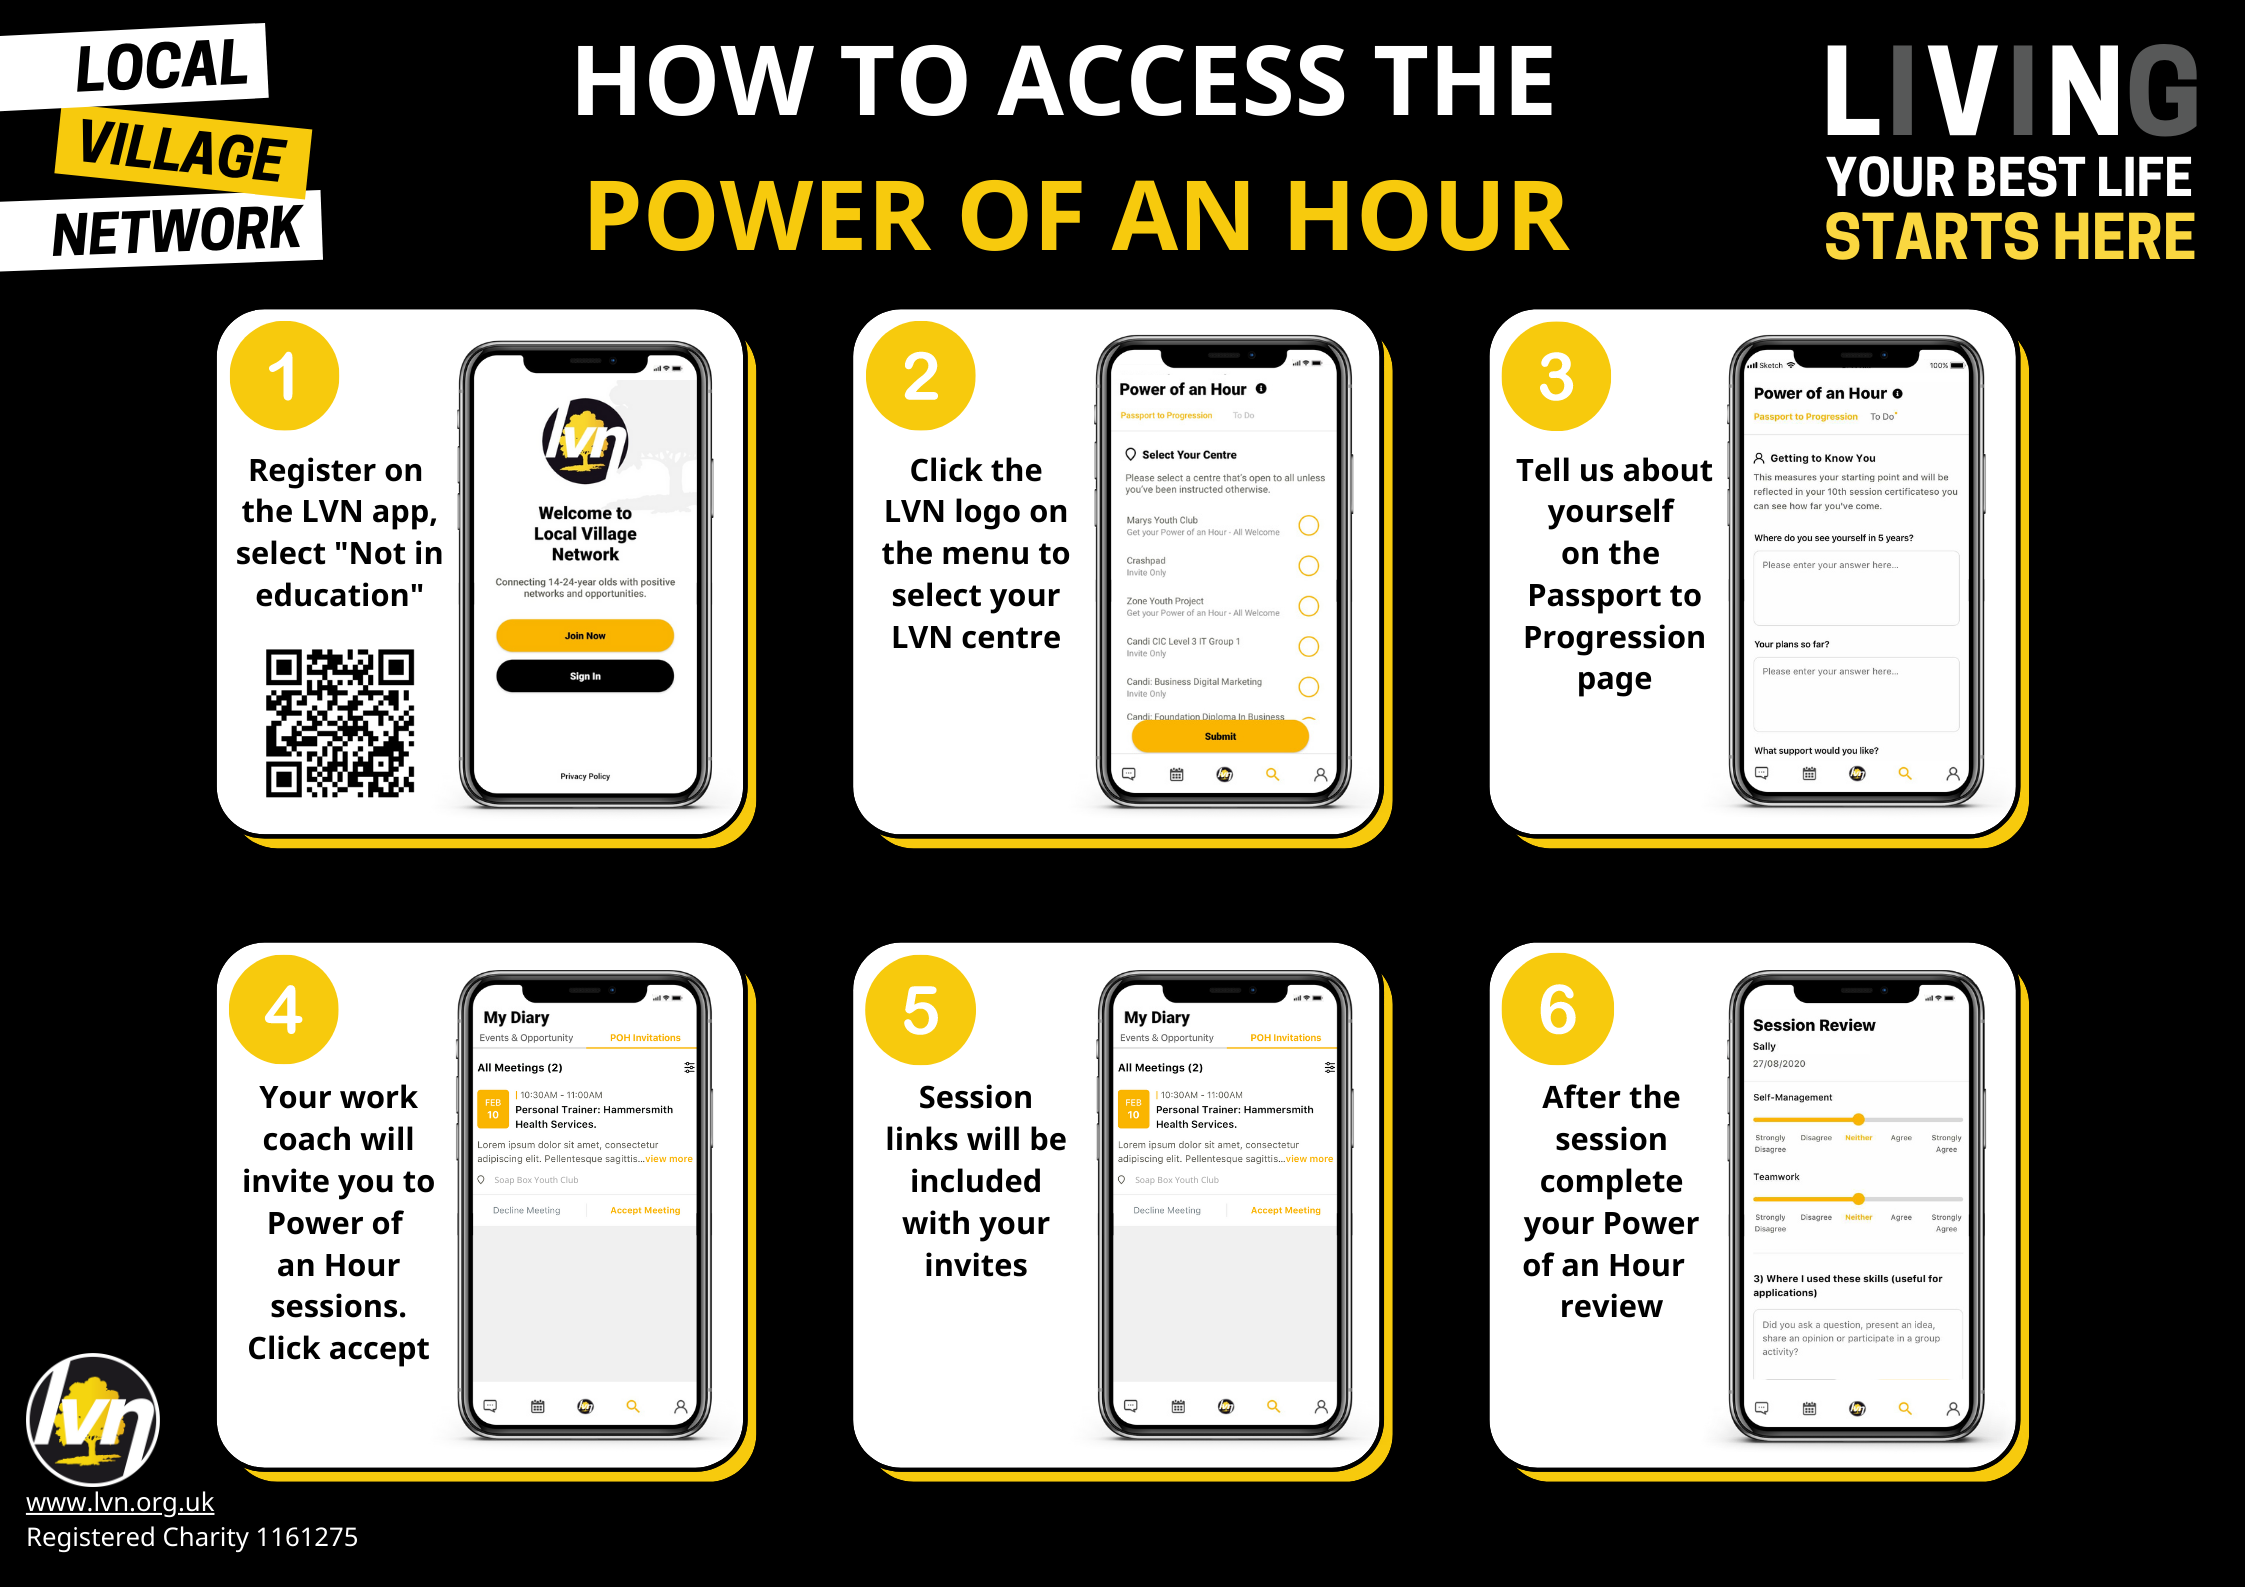 Accessing the Power of an Hour on timetable page